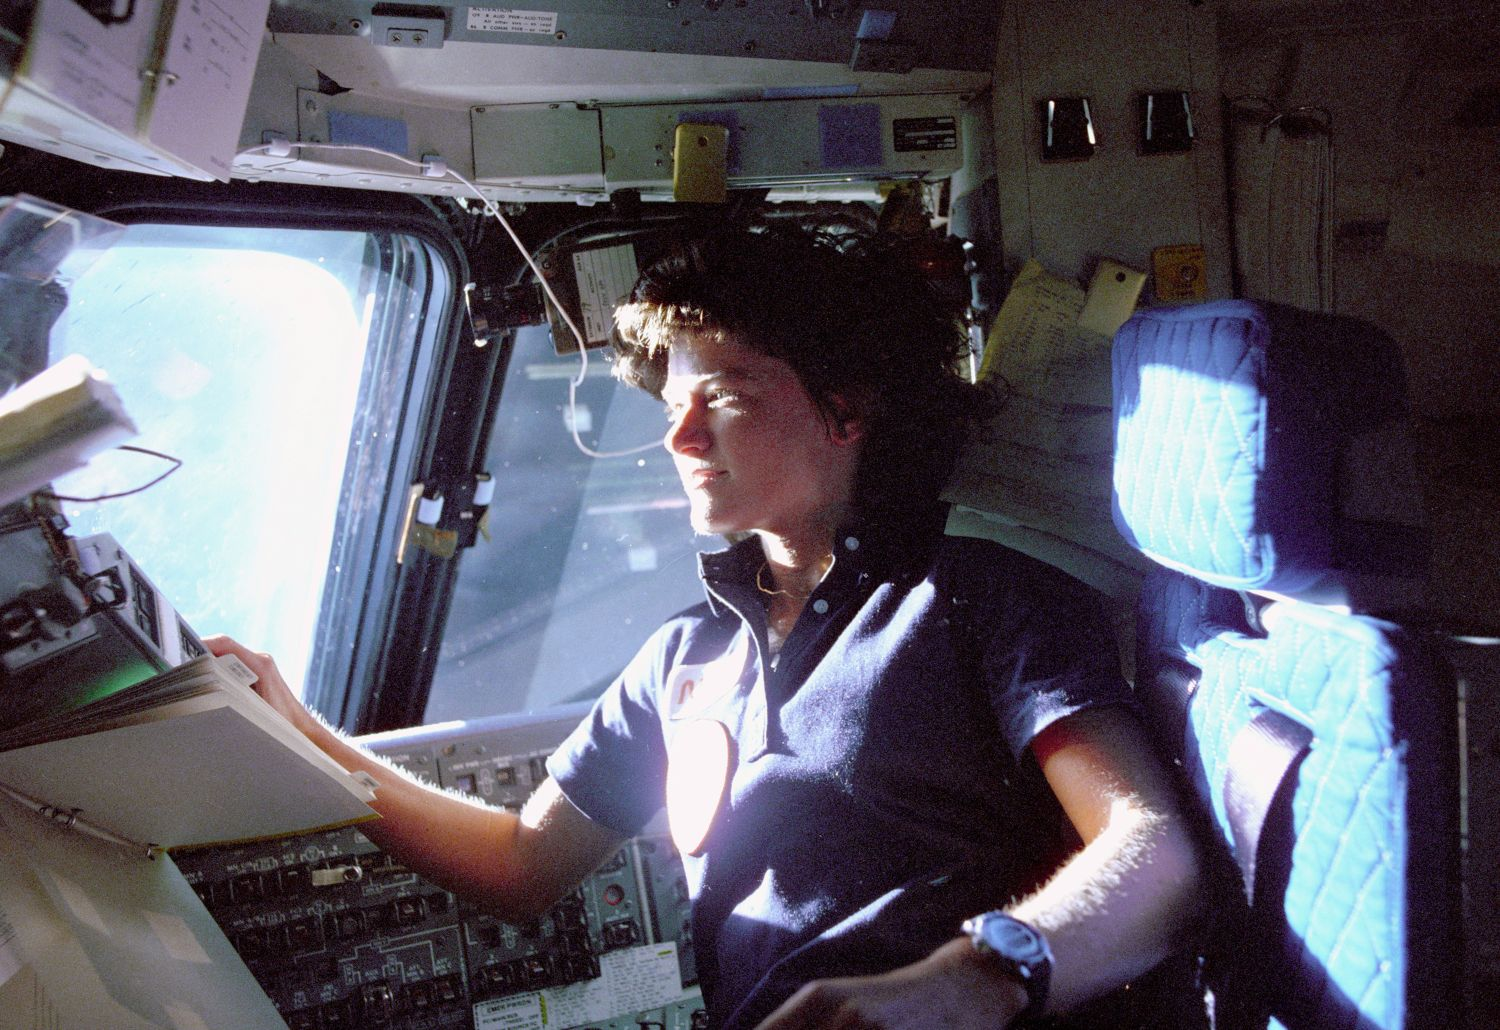 Sally Ride podczas misji w 1983 roku (fot. flickr.com/photos/nasacommons)